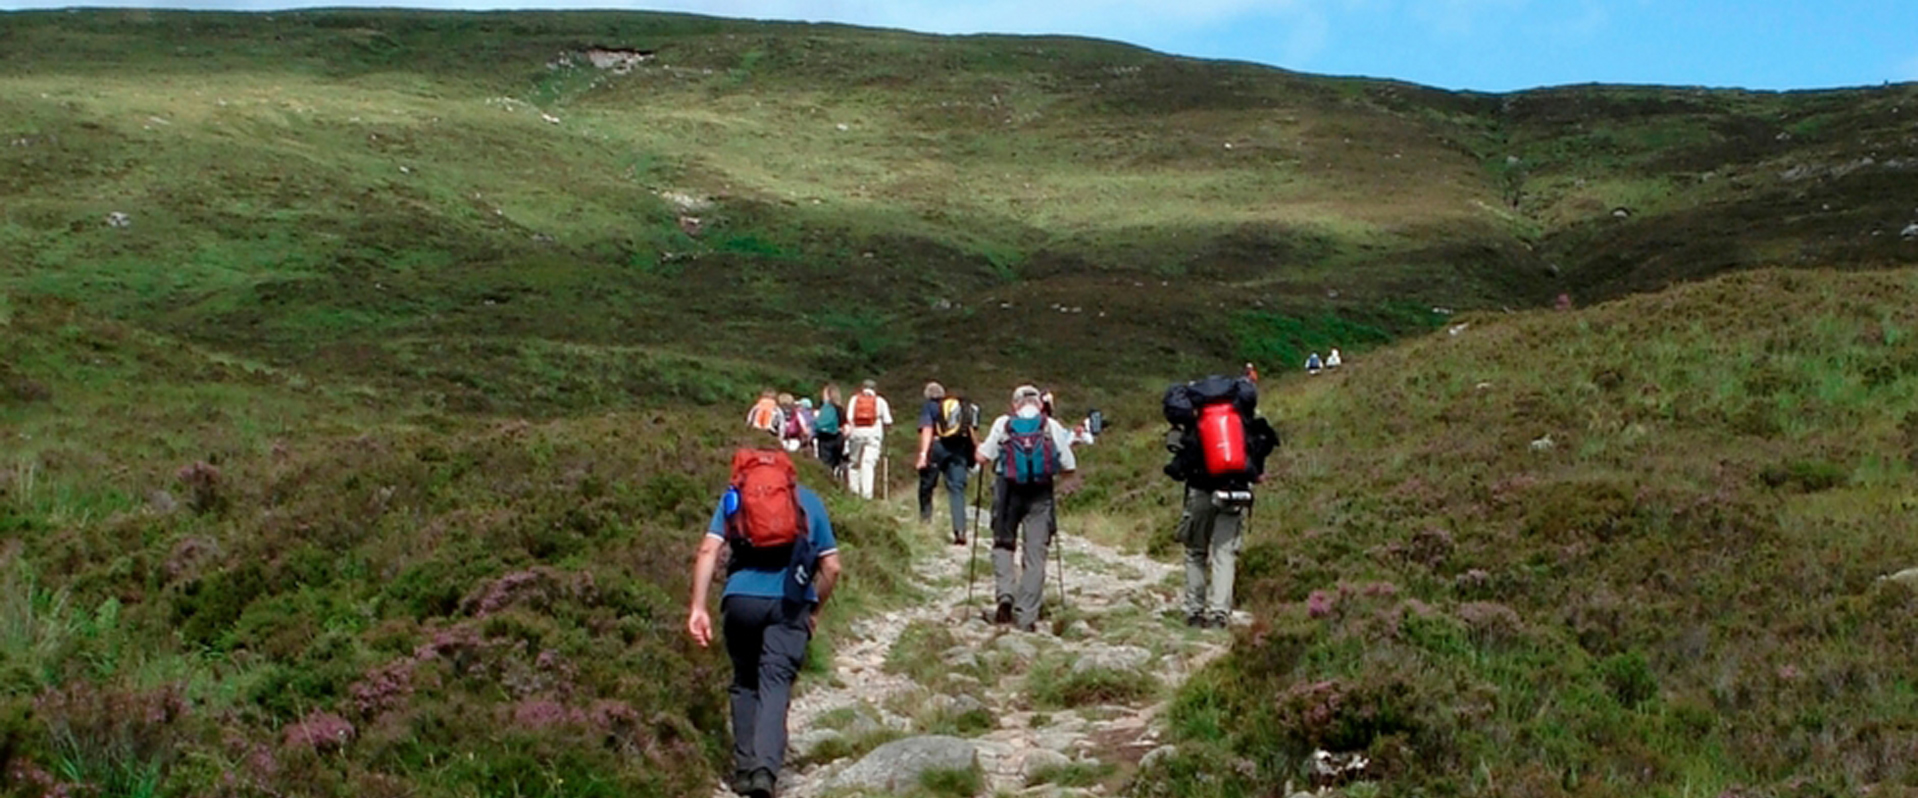 Group of people walking up a hill